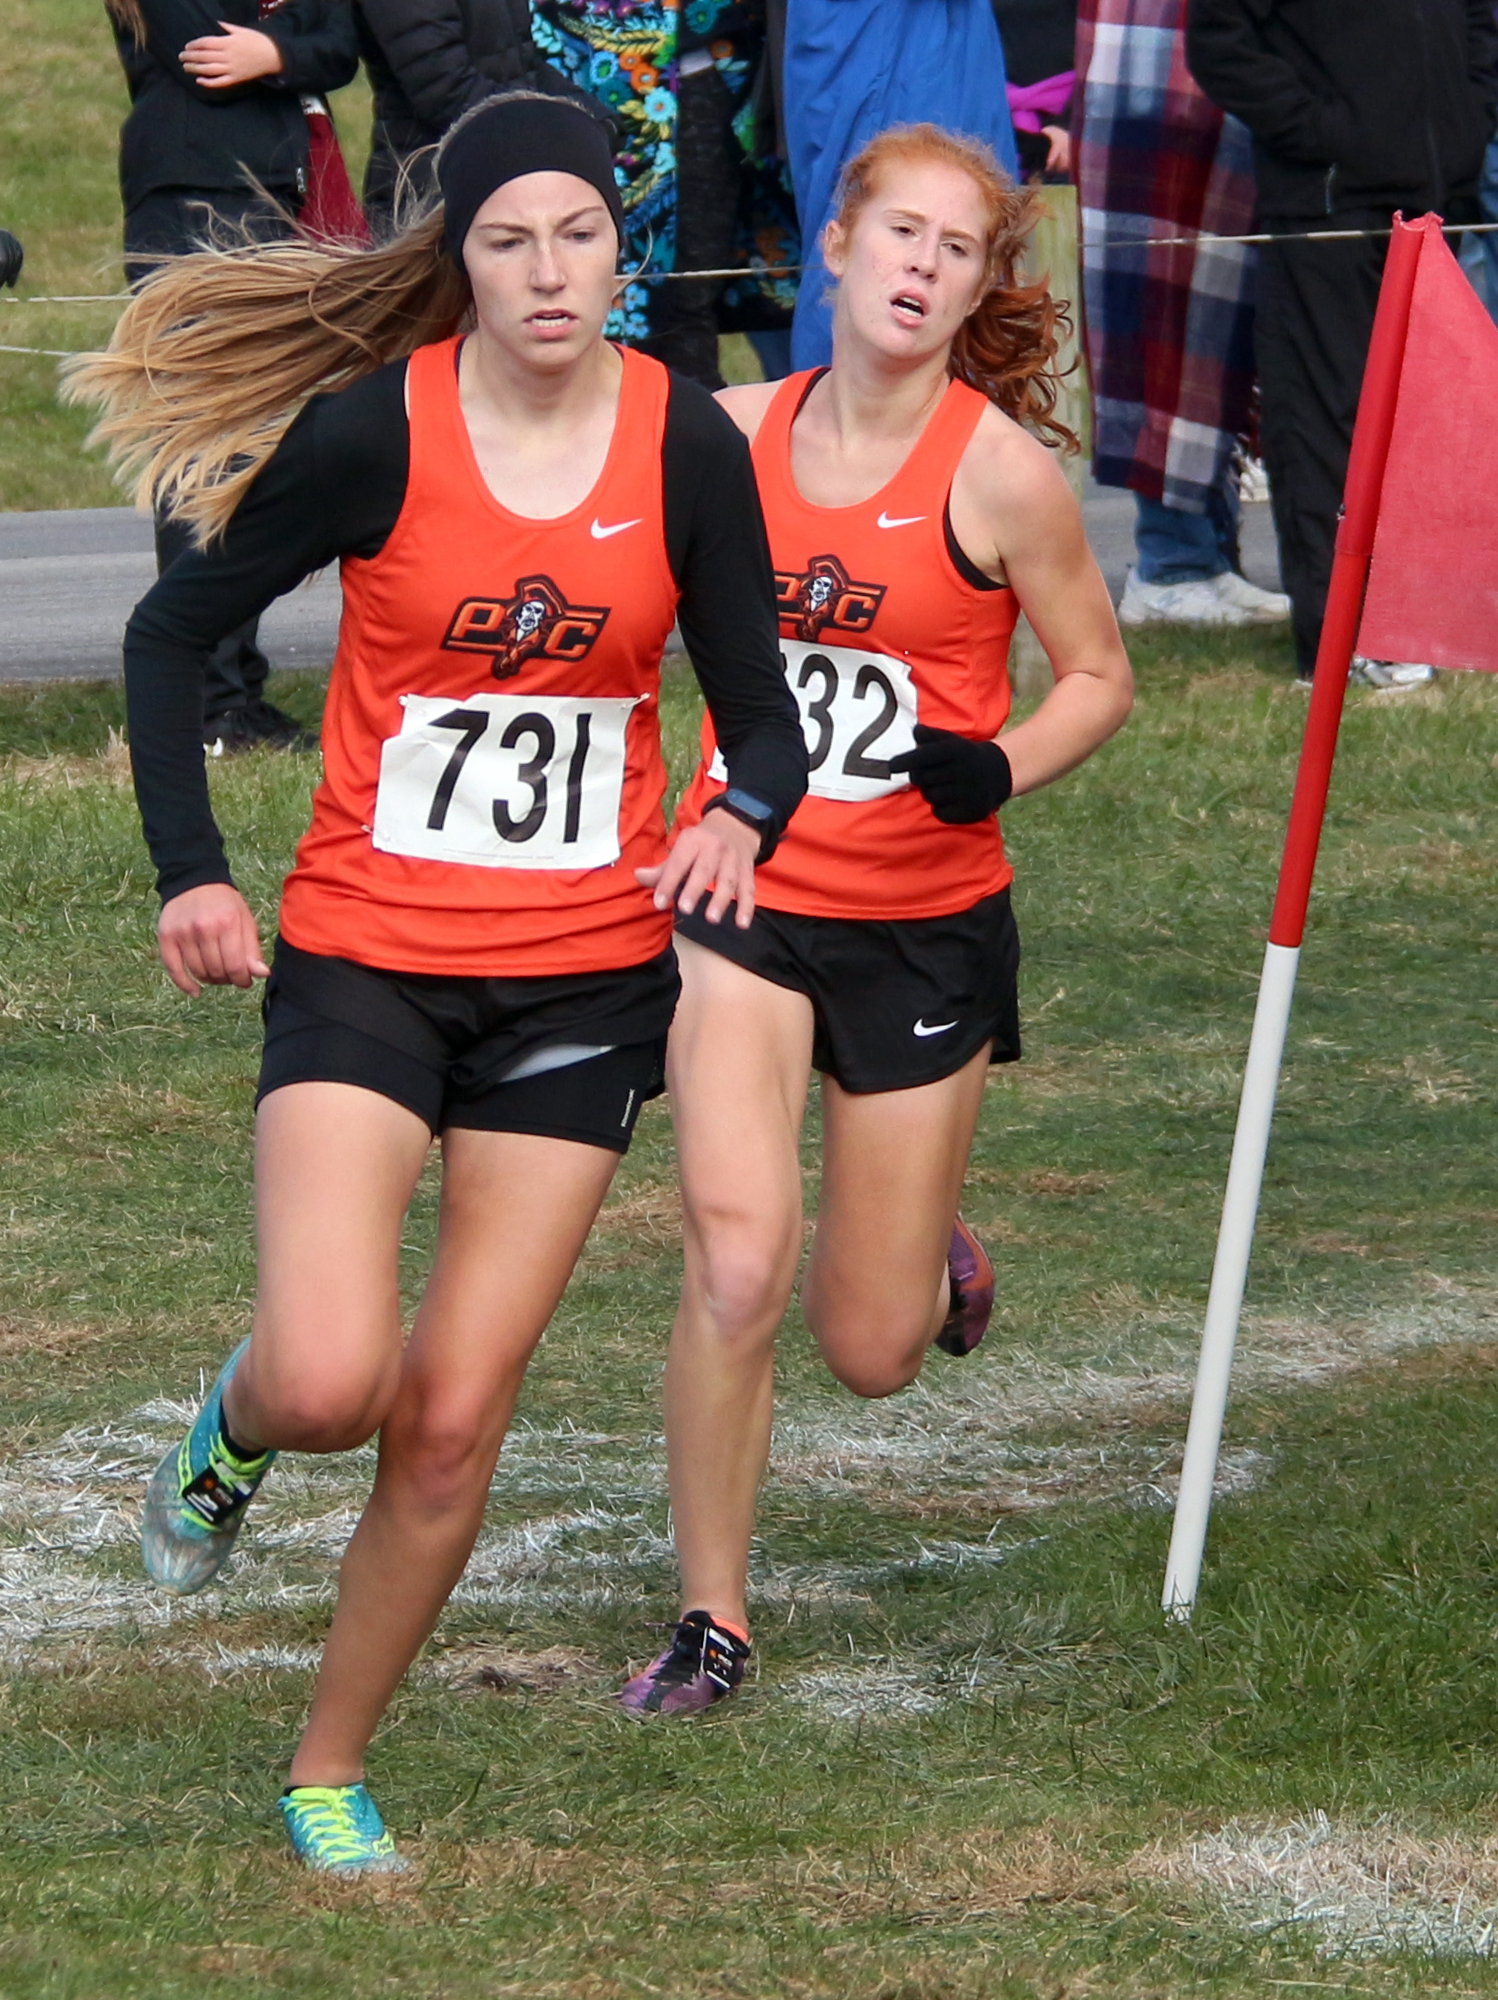 ROSS MARTIN/Citizen photo Platte County seniors Lauren Johnson, left, and Erin Straubel make the turn at the 2-mile mark of the race Saturday, Oct. 28.